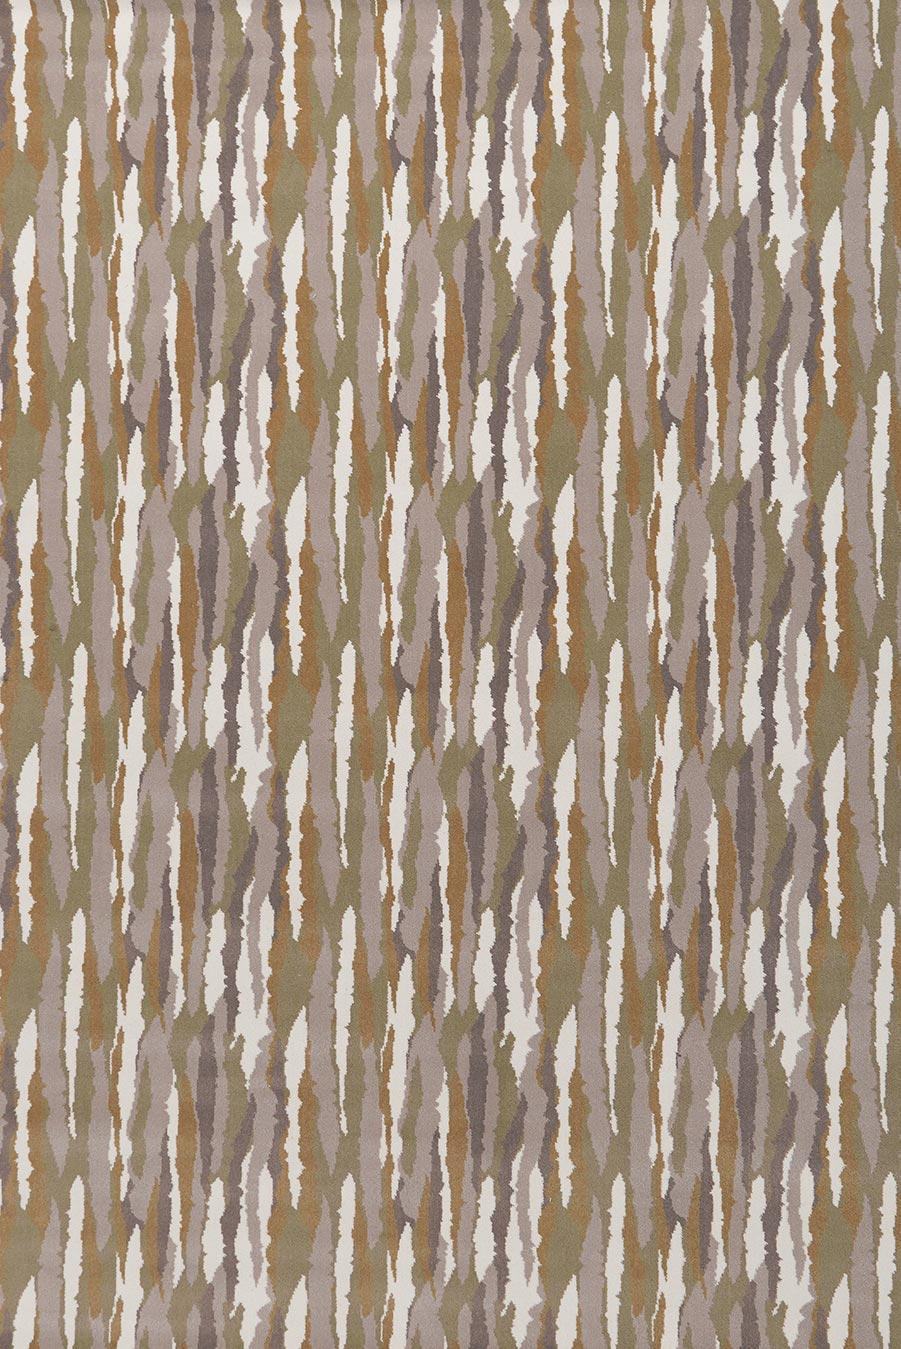 Overhead view of Drift brown patterned Axminster carpet by Greg Natale